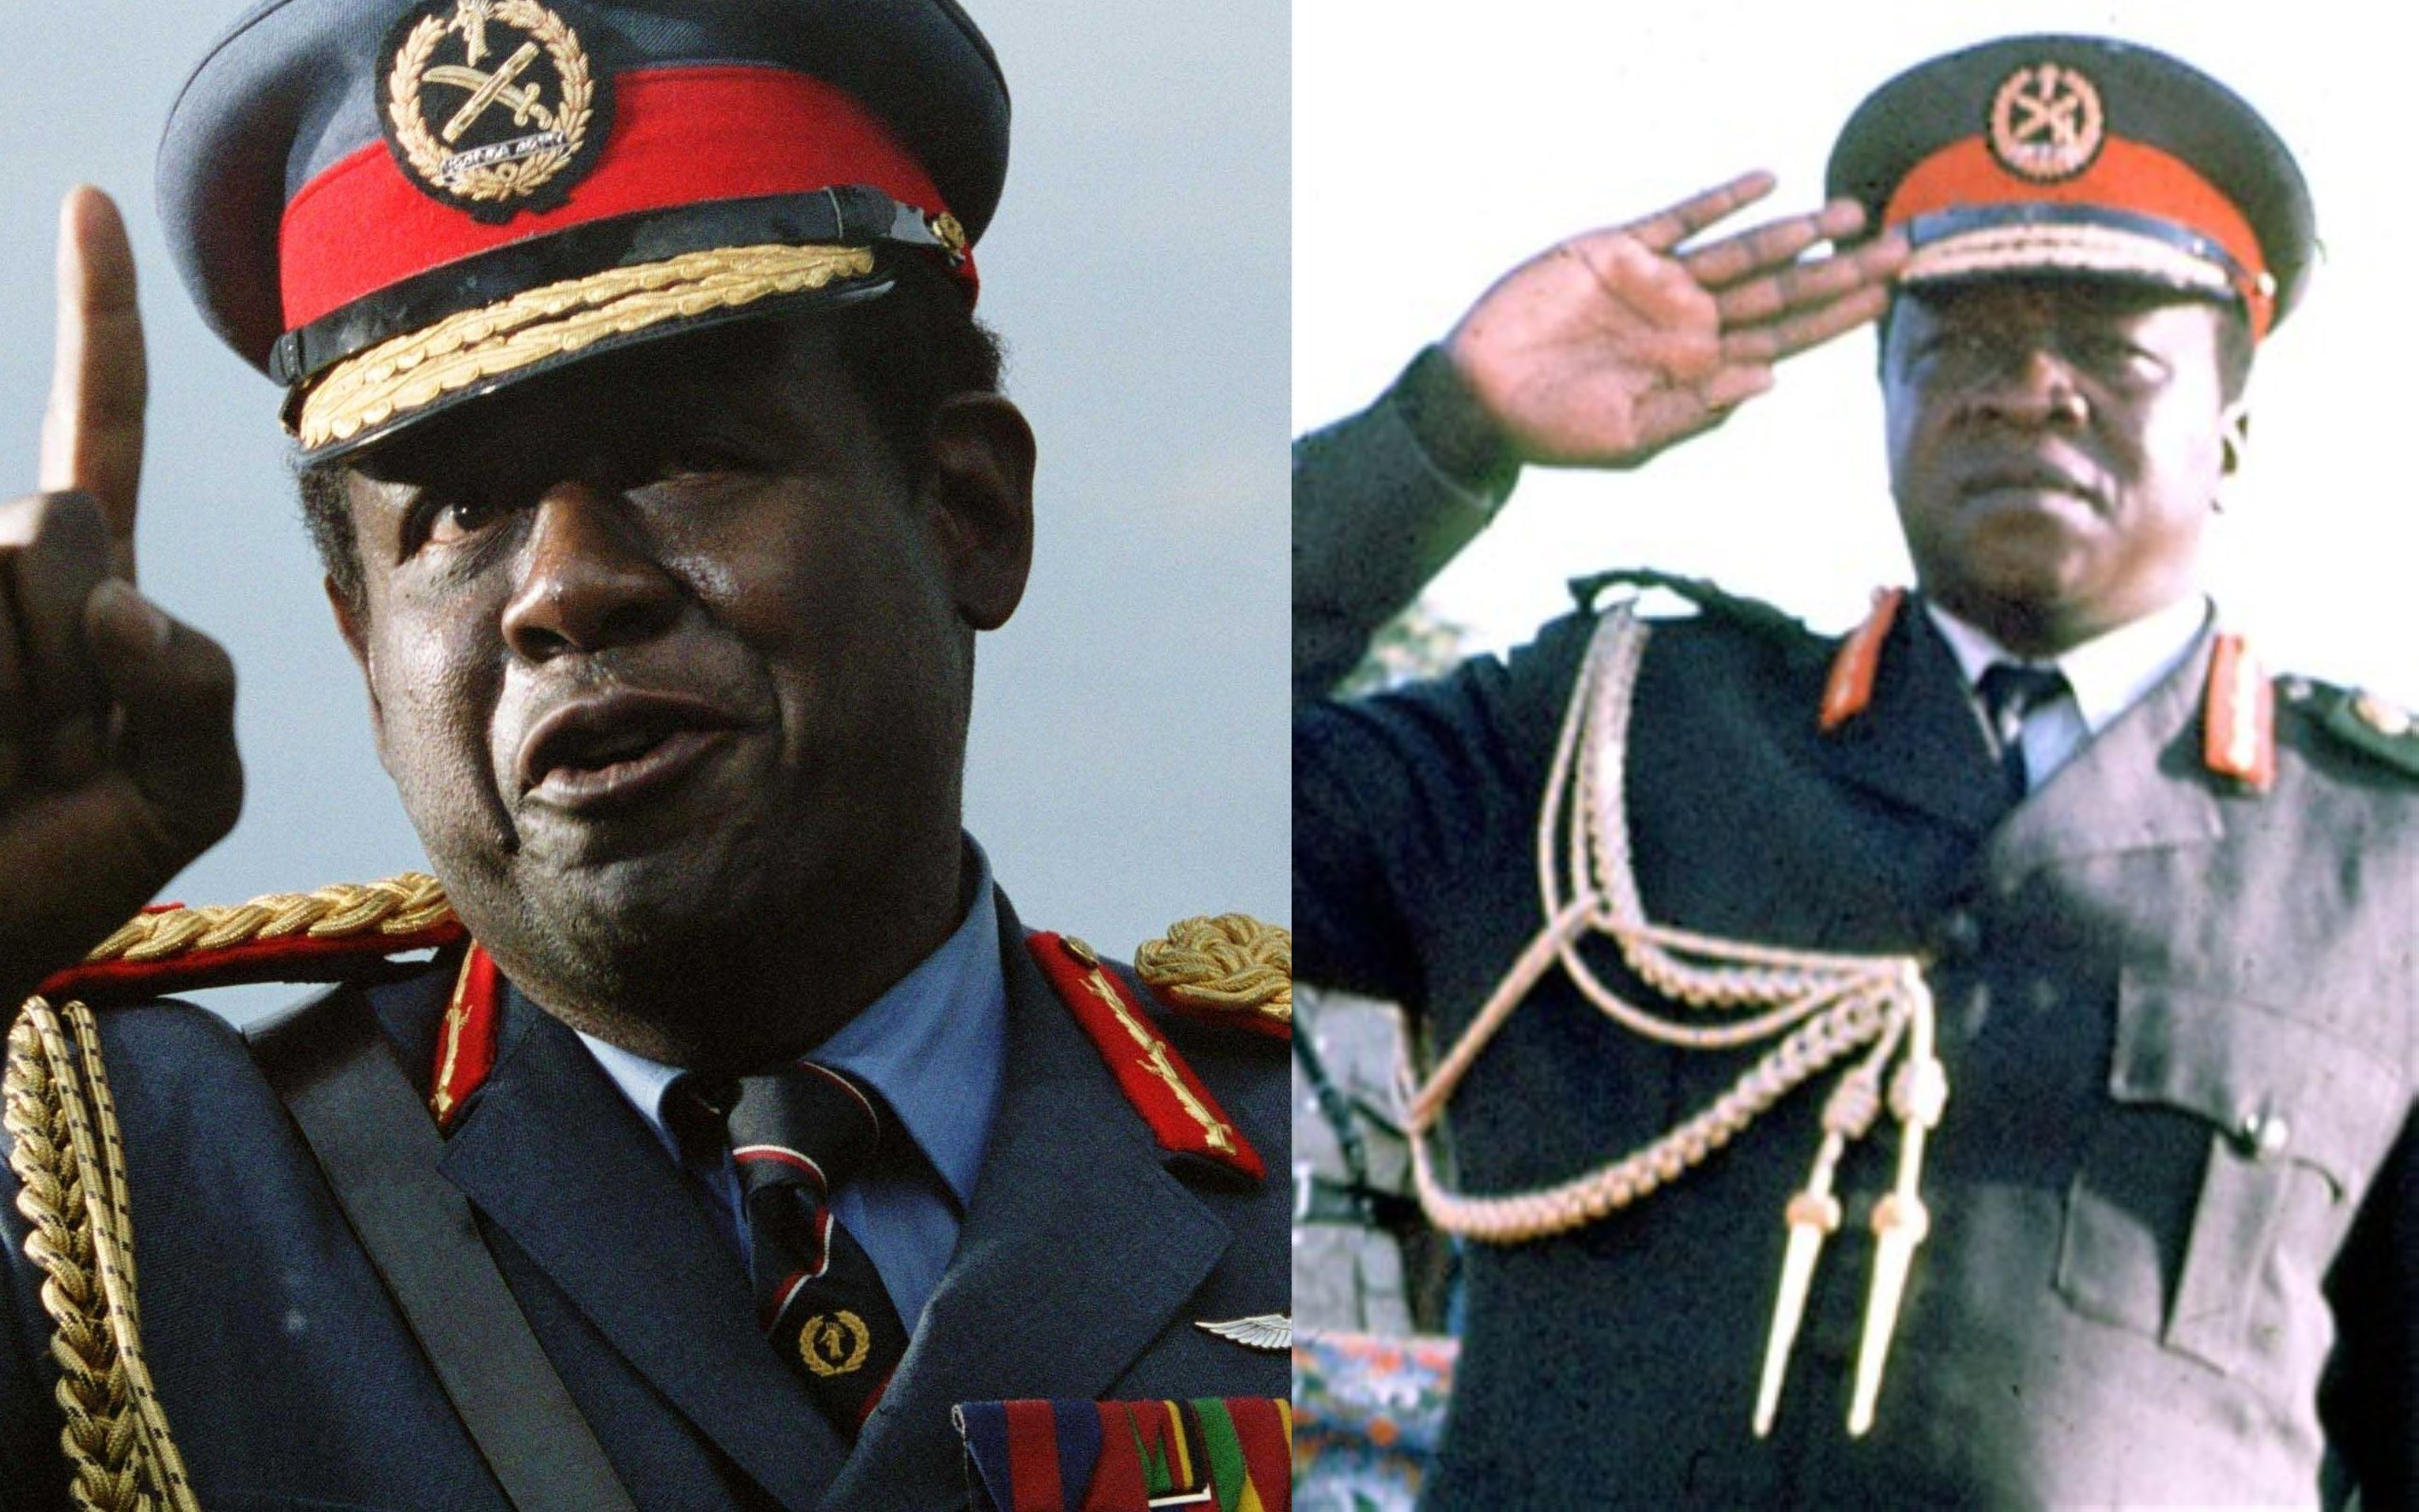 the dictator helicopter scene with Idi Amin on Movie Notes Critics Like The Dictator Did They Have A Choice further Collectionmdwn Marines Vs Air Force Meme besides Watch as well Lego Baby Delivered In Style moreover Liz Tells Frank What Happened In Predator.